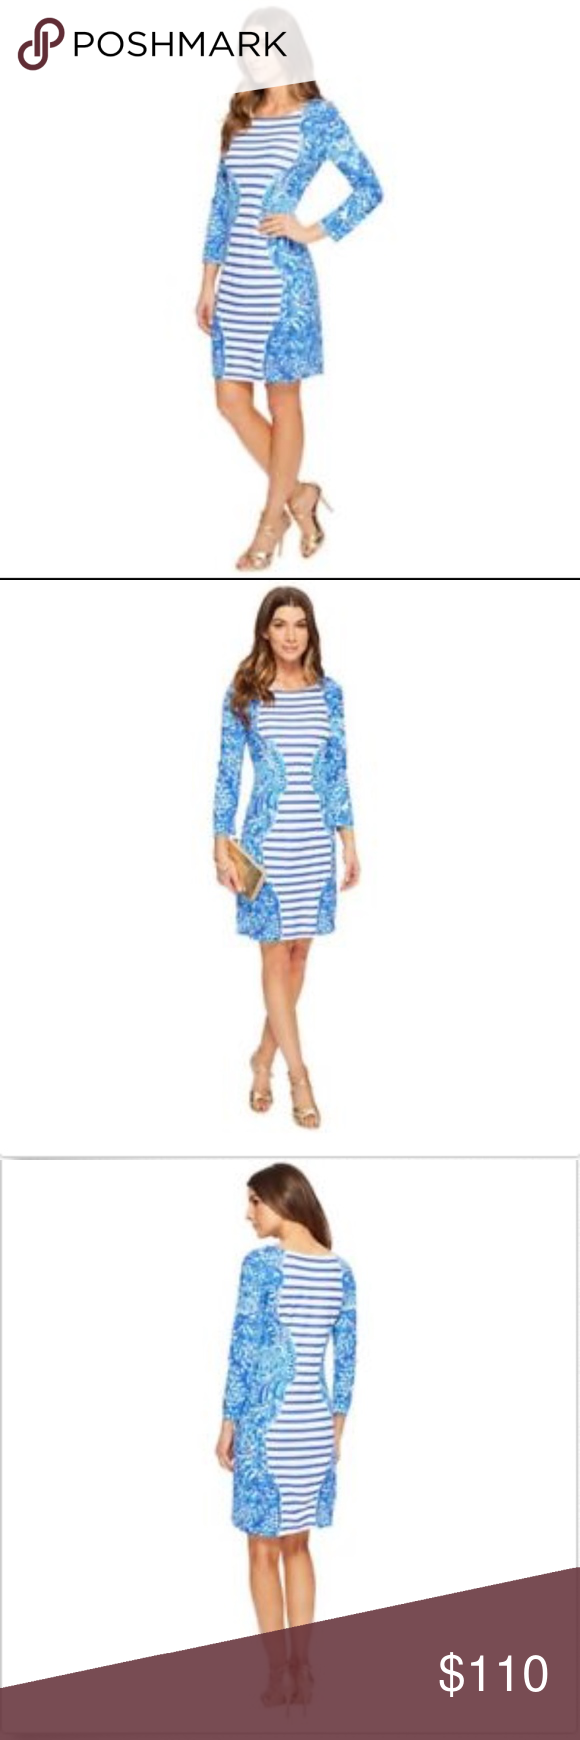 b4b65cf348c289 LILLY PULITZER Nila Strip dress Brilliant Blue S LILLY PULITZER Size Small Nila  dress Brilliant Blue